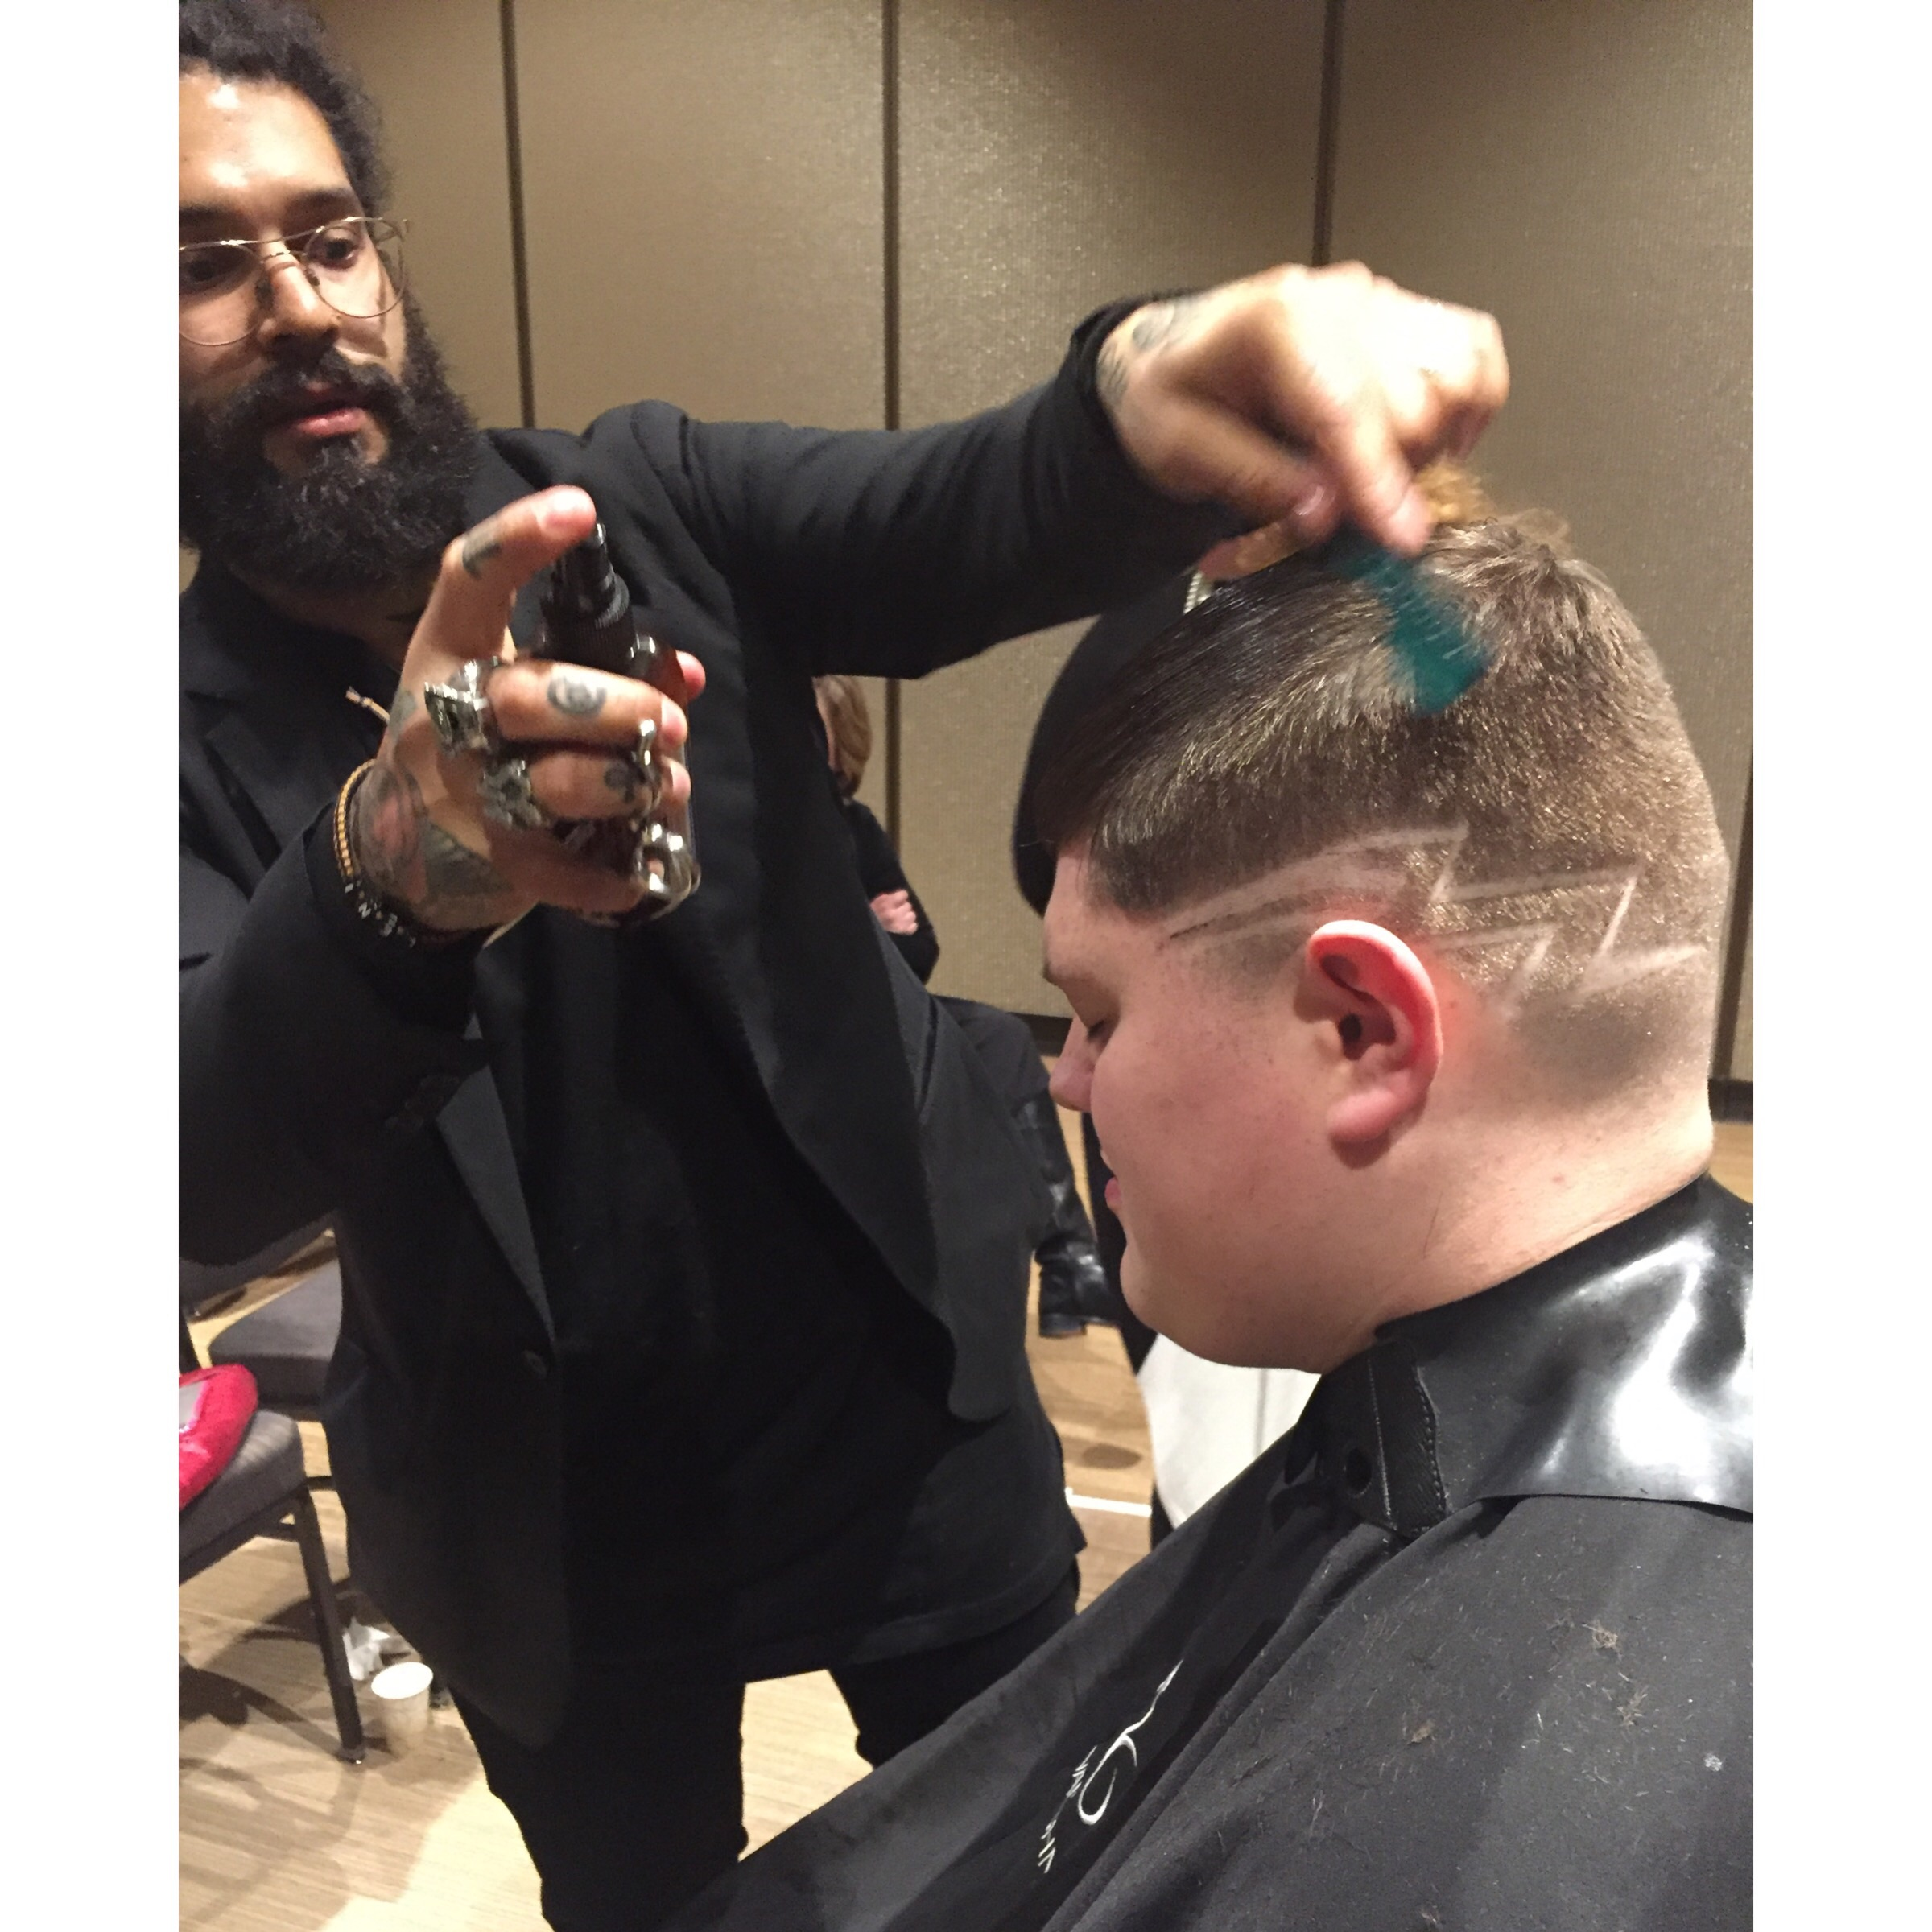 Manny, the barber from V76